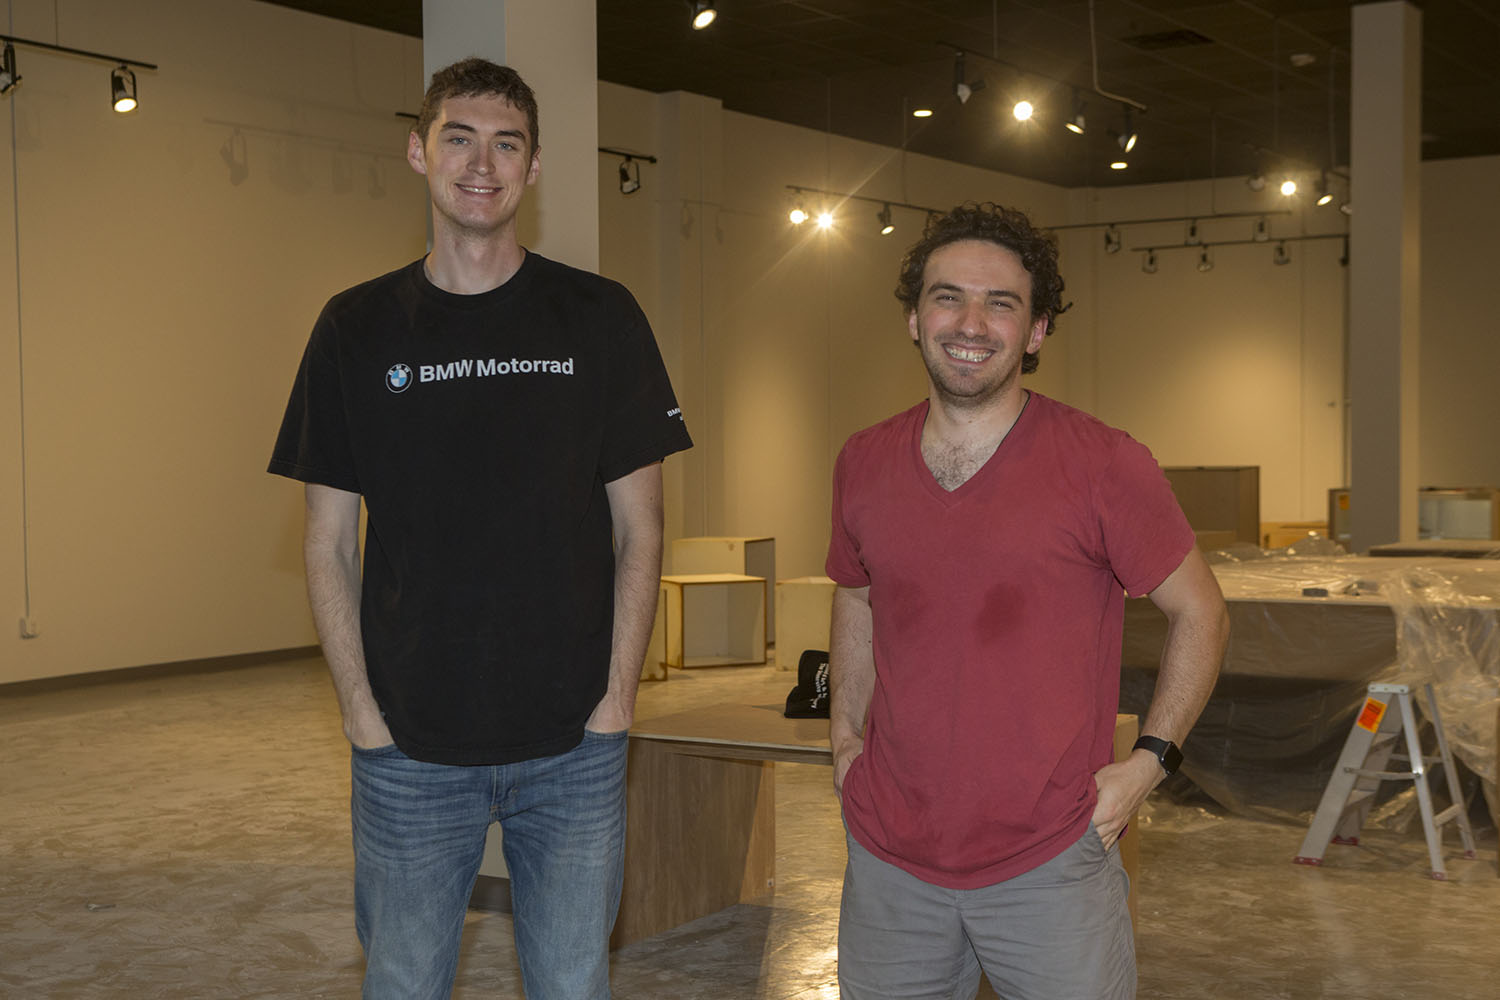 Senior Patrick Hagan, originally from Iowa City, and recent graduate Vako Darjania, originally from the Republic of Georgia, pose for a portrait in their retail space located in Iowa River Landing, Coralville on Sept. 5, 2018. This business will be run as a collaborative retail space for eight undergraduate students and will sell a variety of different products.